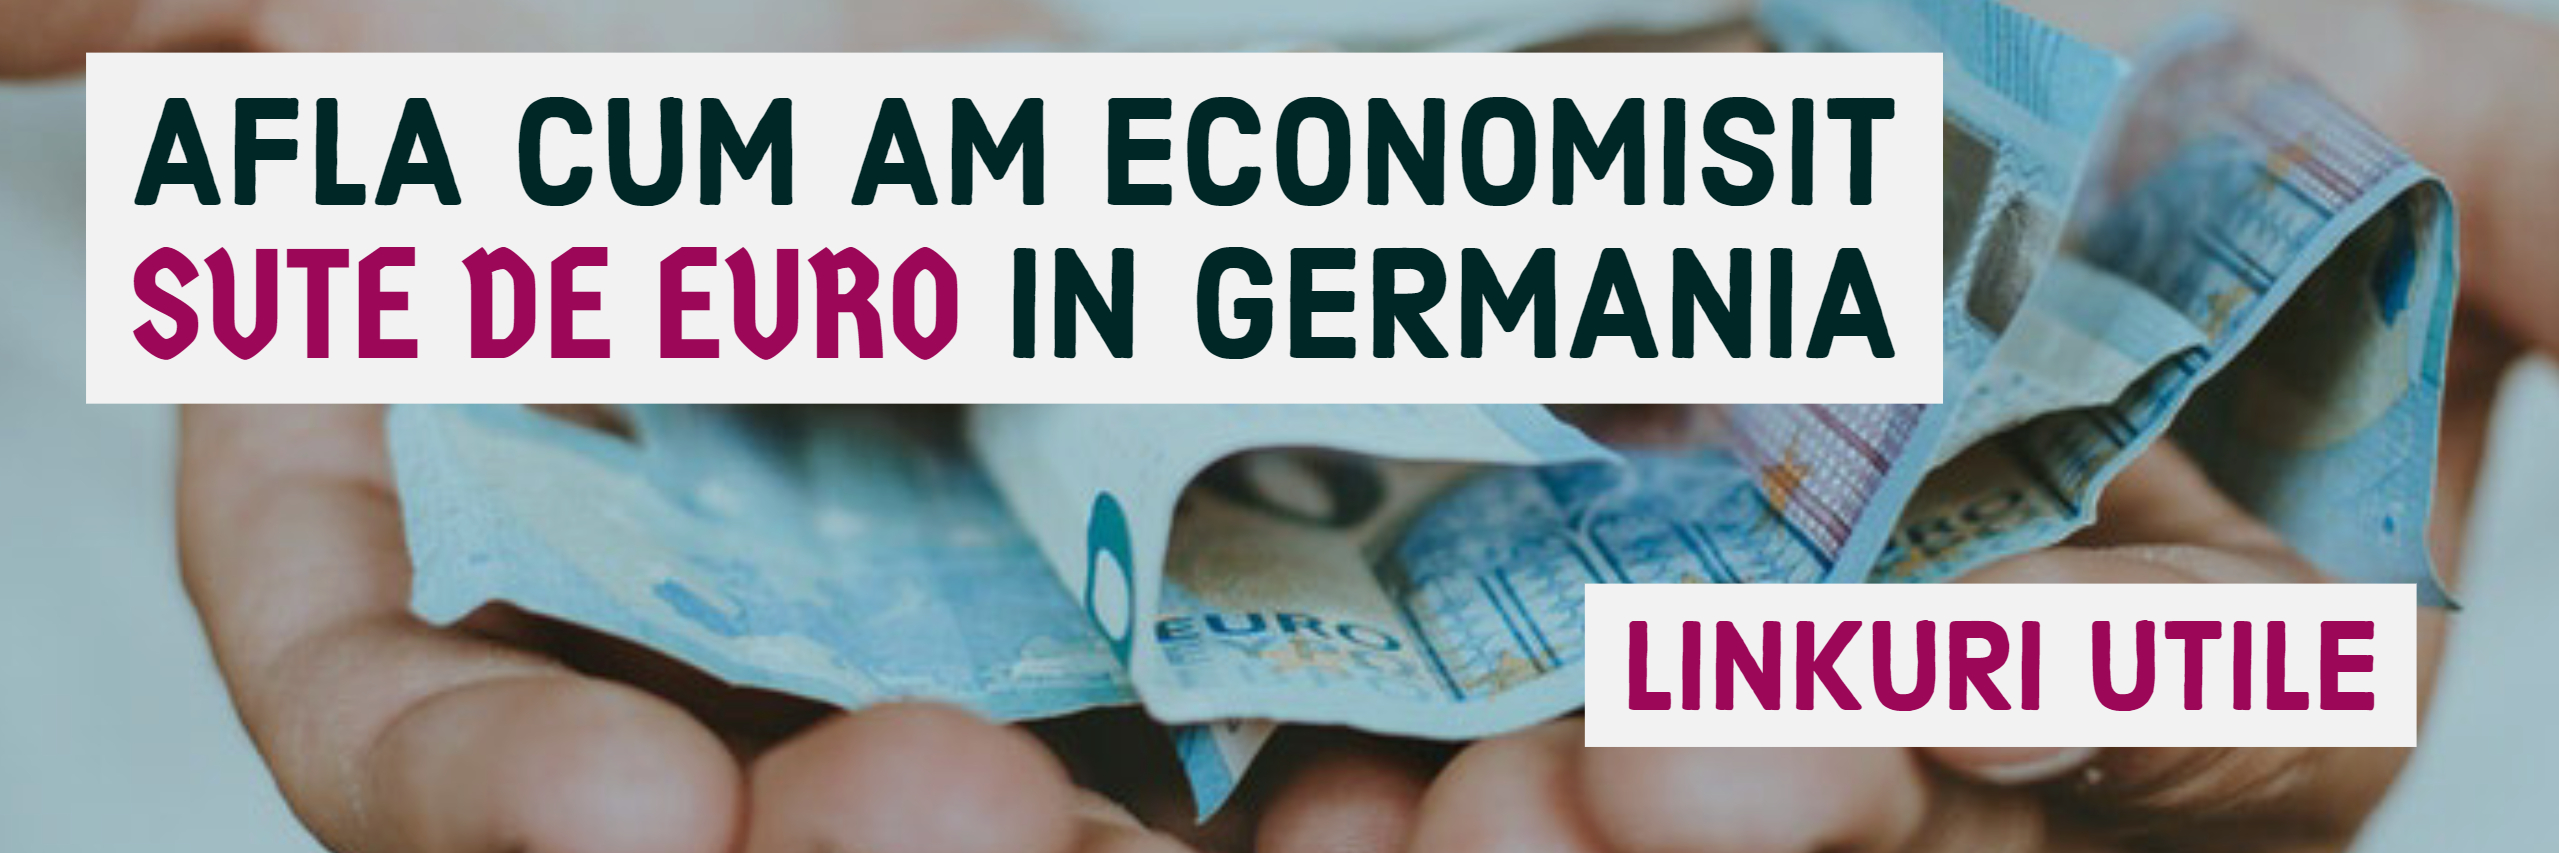 Economii in Germania-Linkuri utile